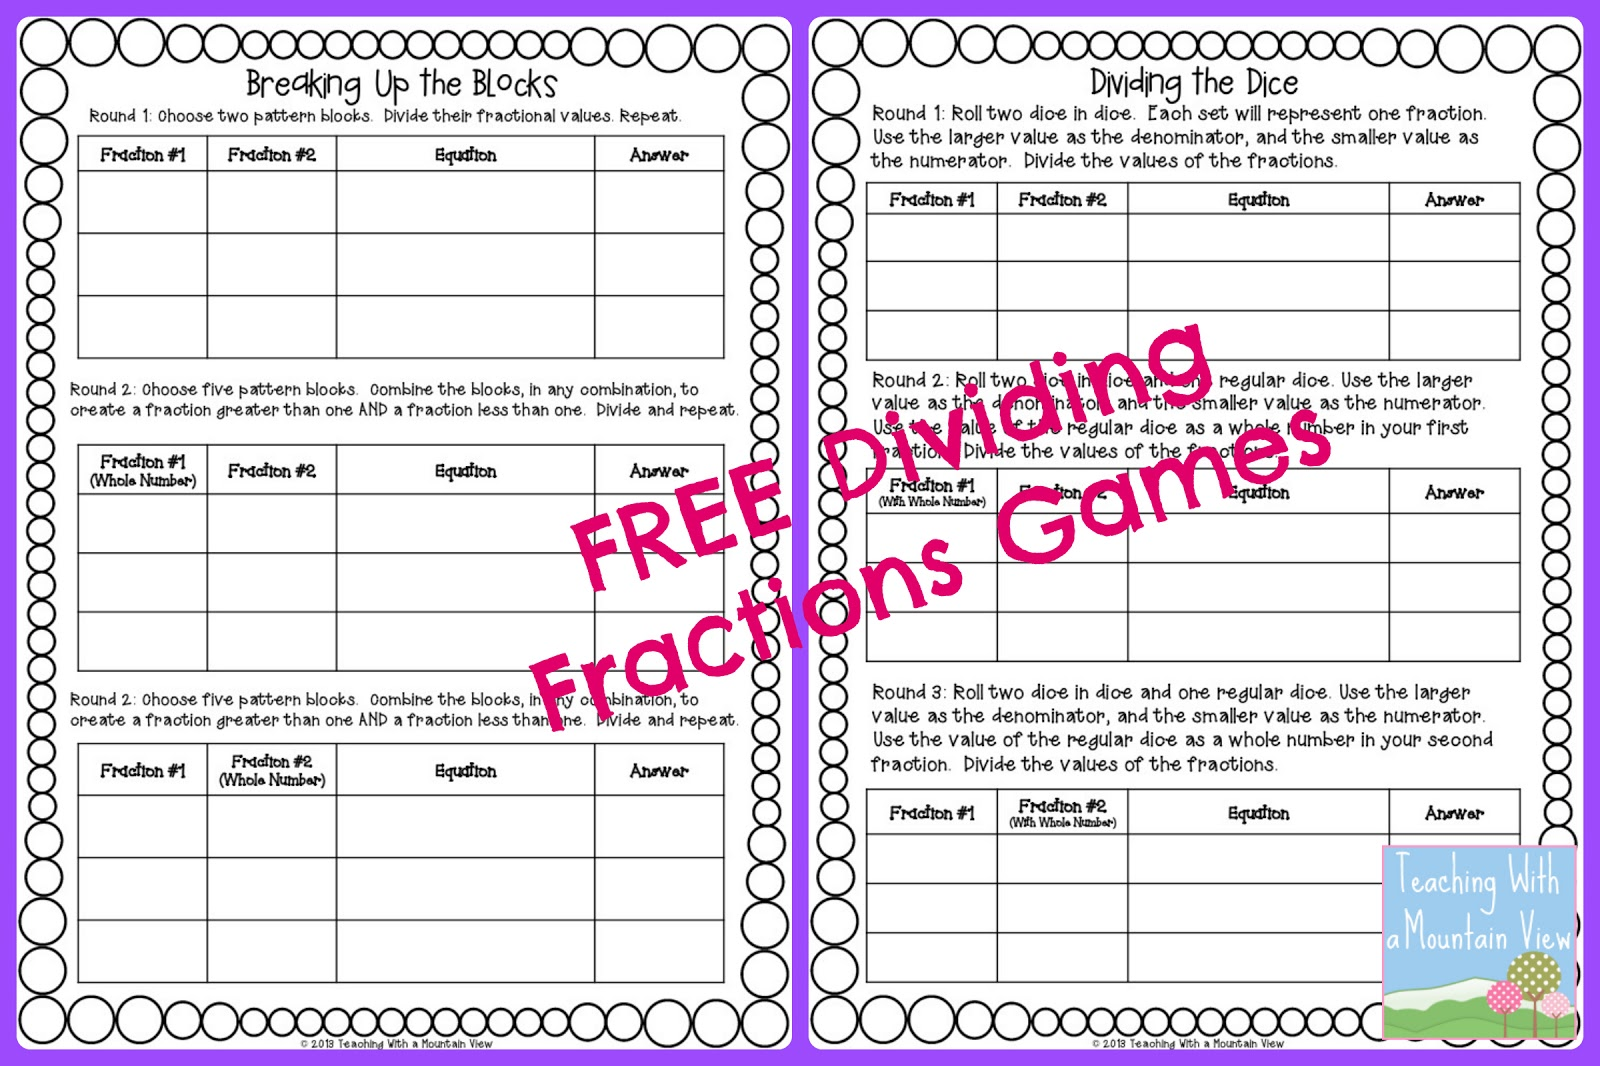 Teaching With a Mountain View Dividing Fractions Anchor Chart – Dividing Fraction Worksheet